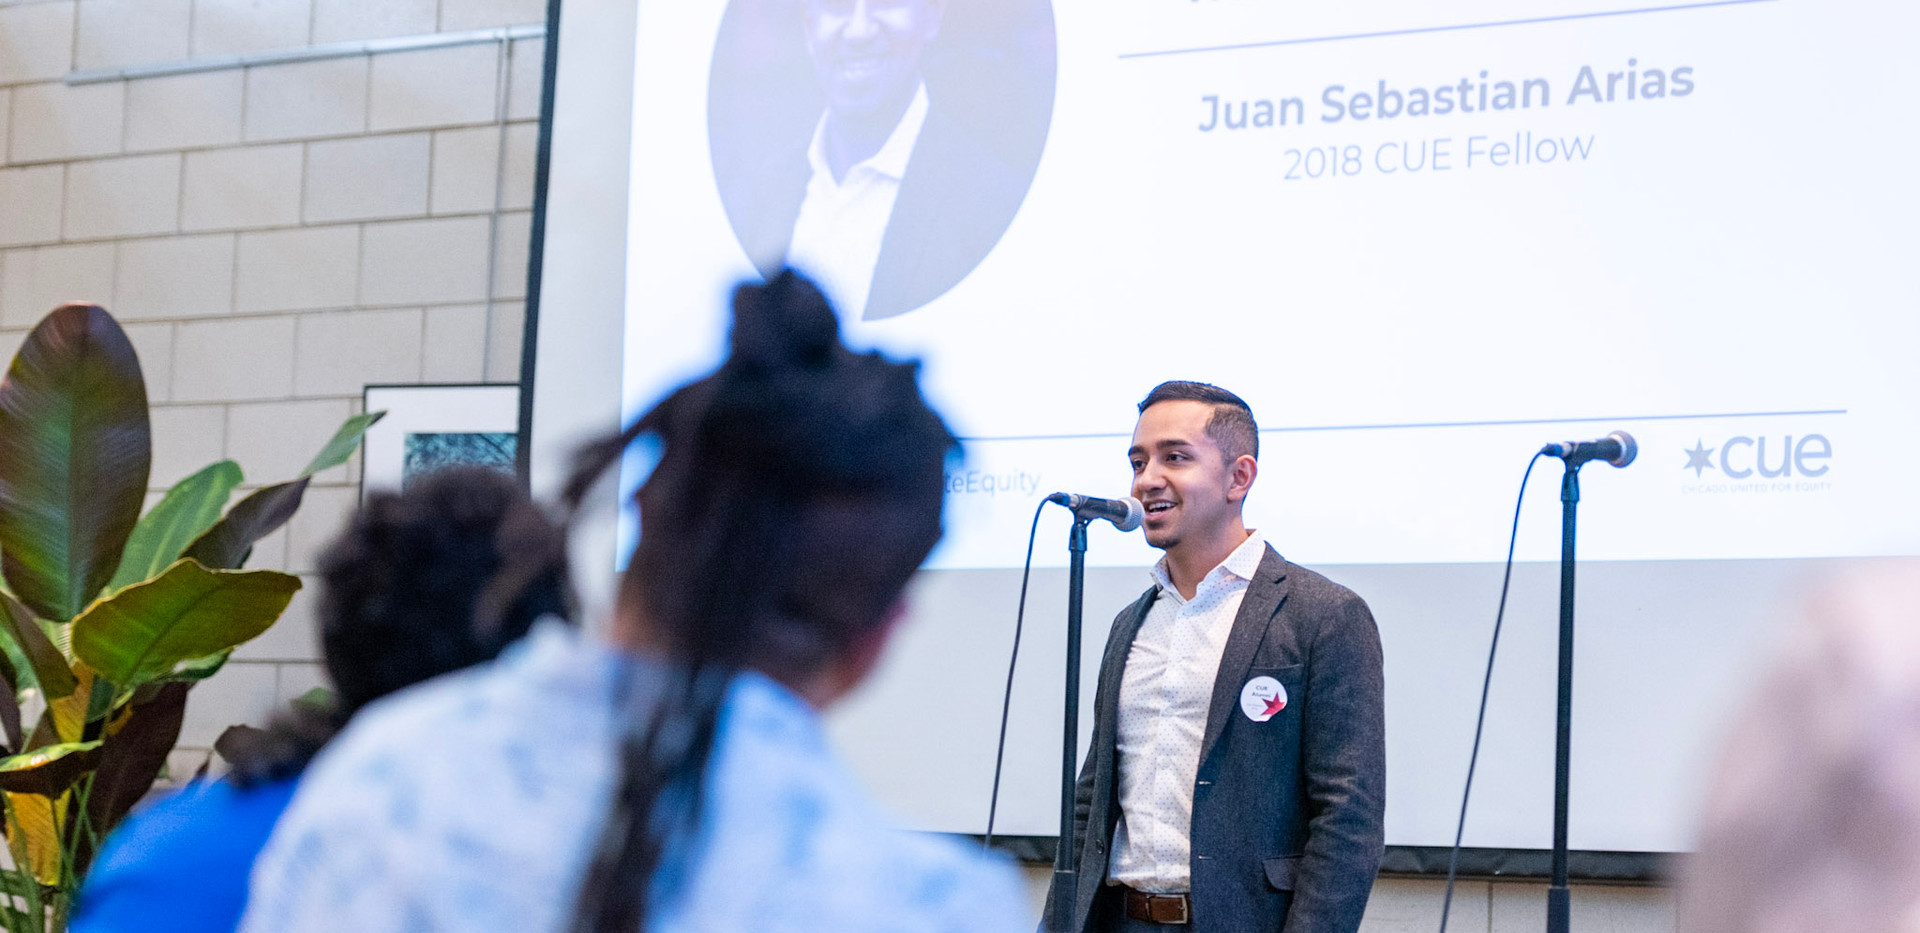 2018 CUE Fellow Juan Sebastian Arias tells the story of this project at the 2019 CUE Showcase at Garfield Park Conservatory.